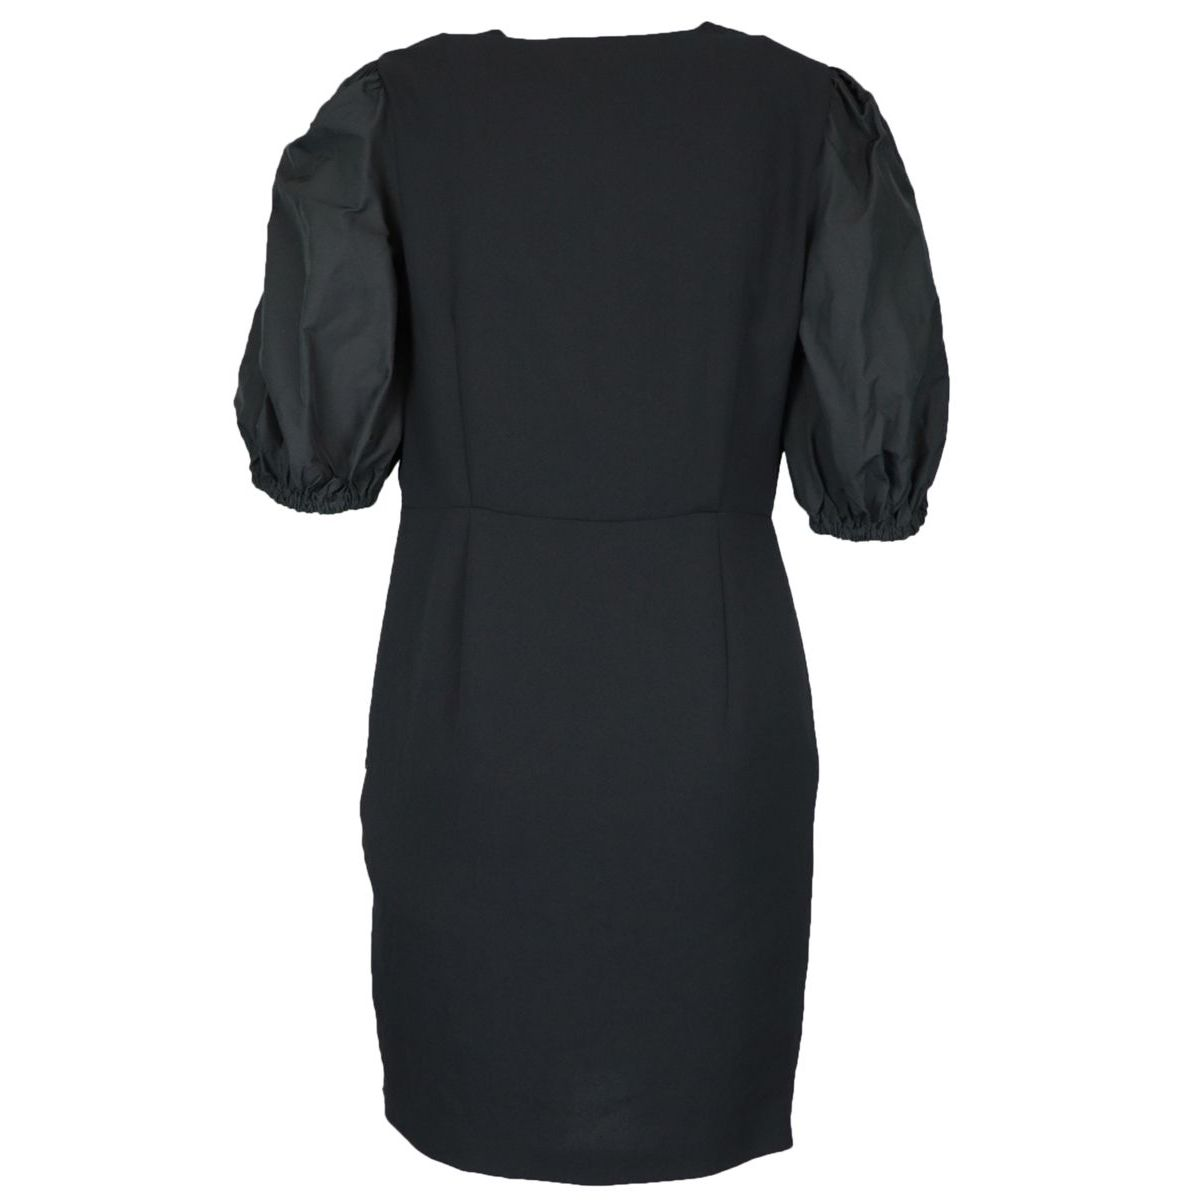 Bardak asymmetrical dress Black Pinko